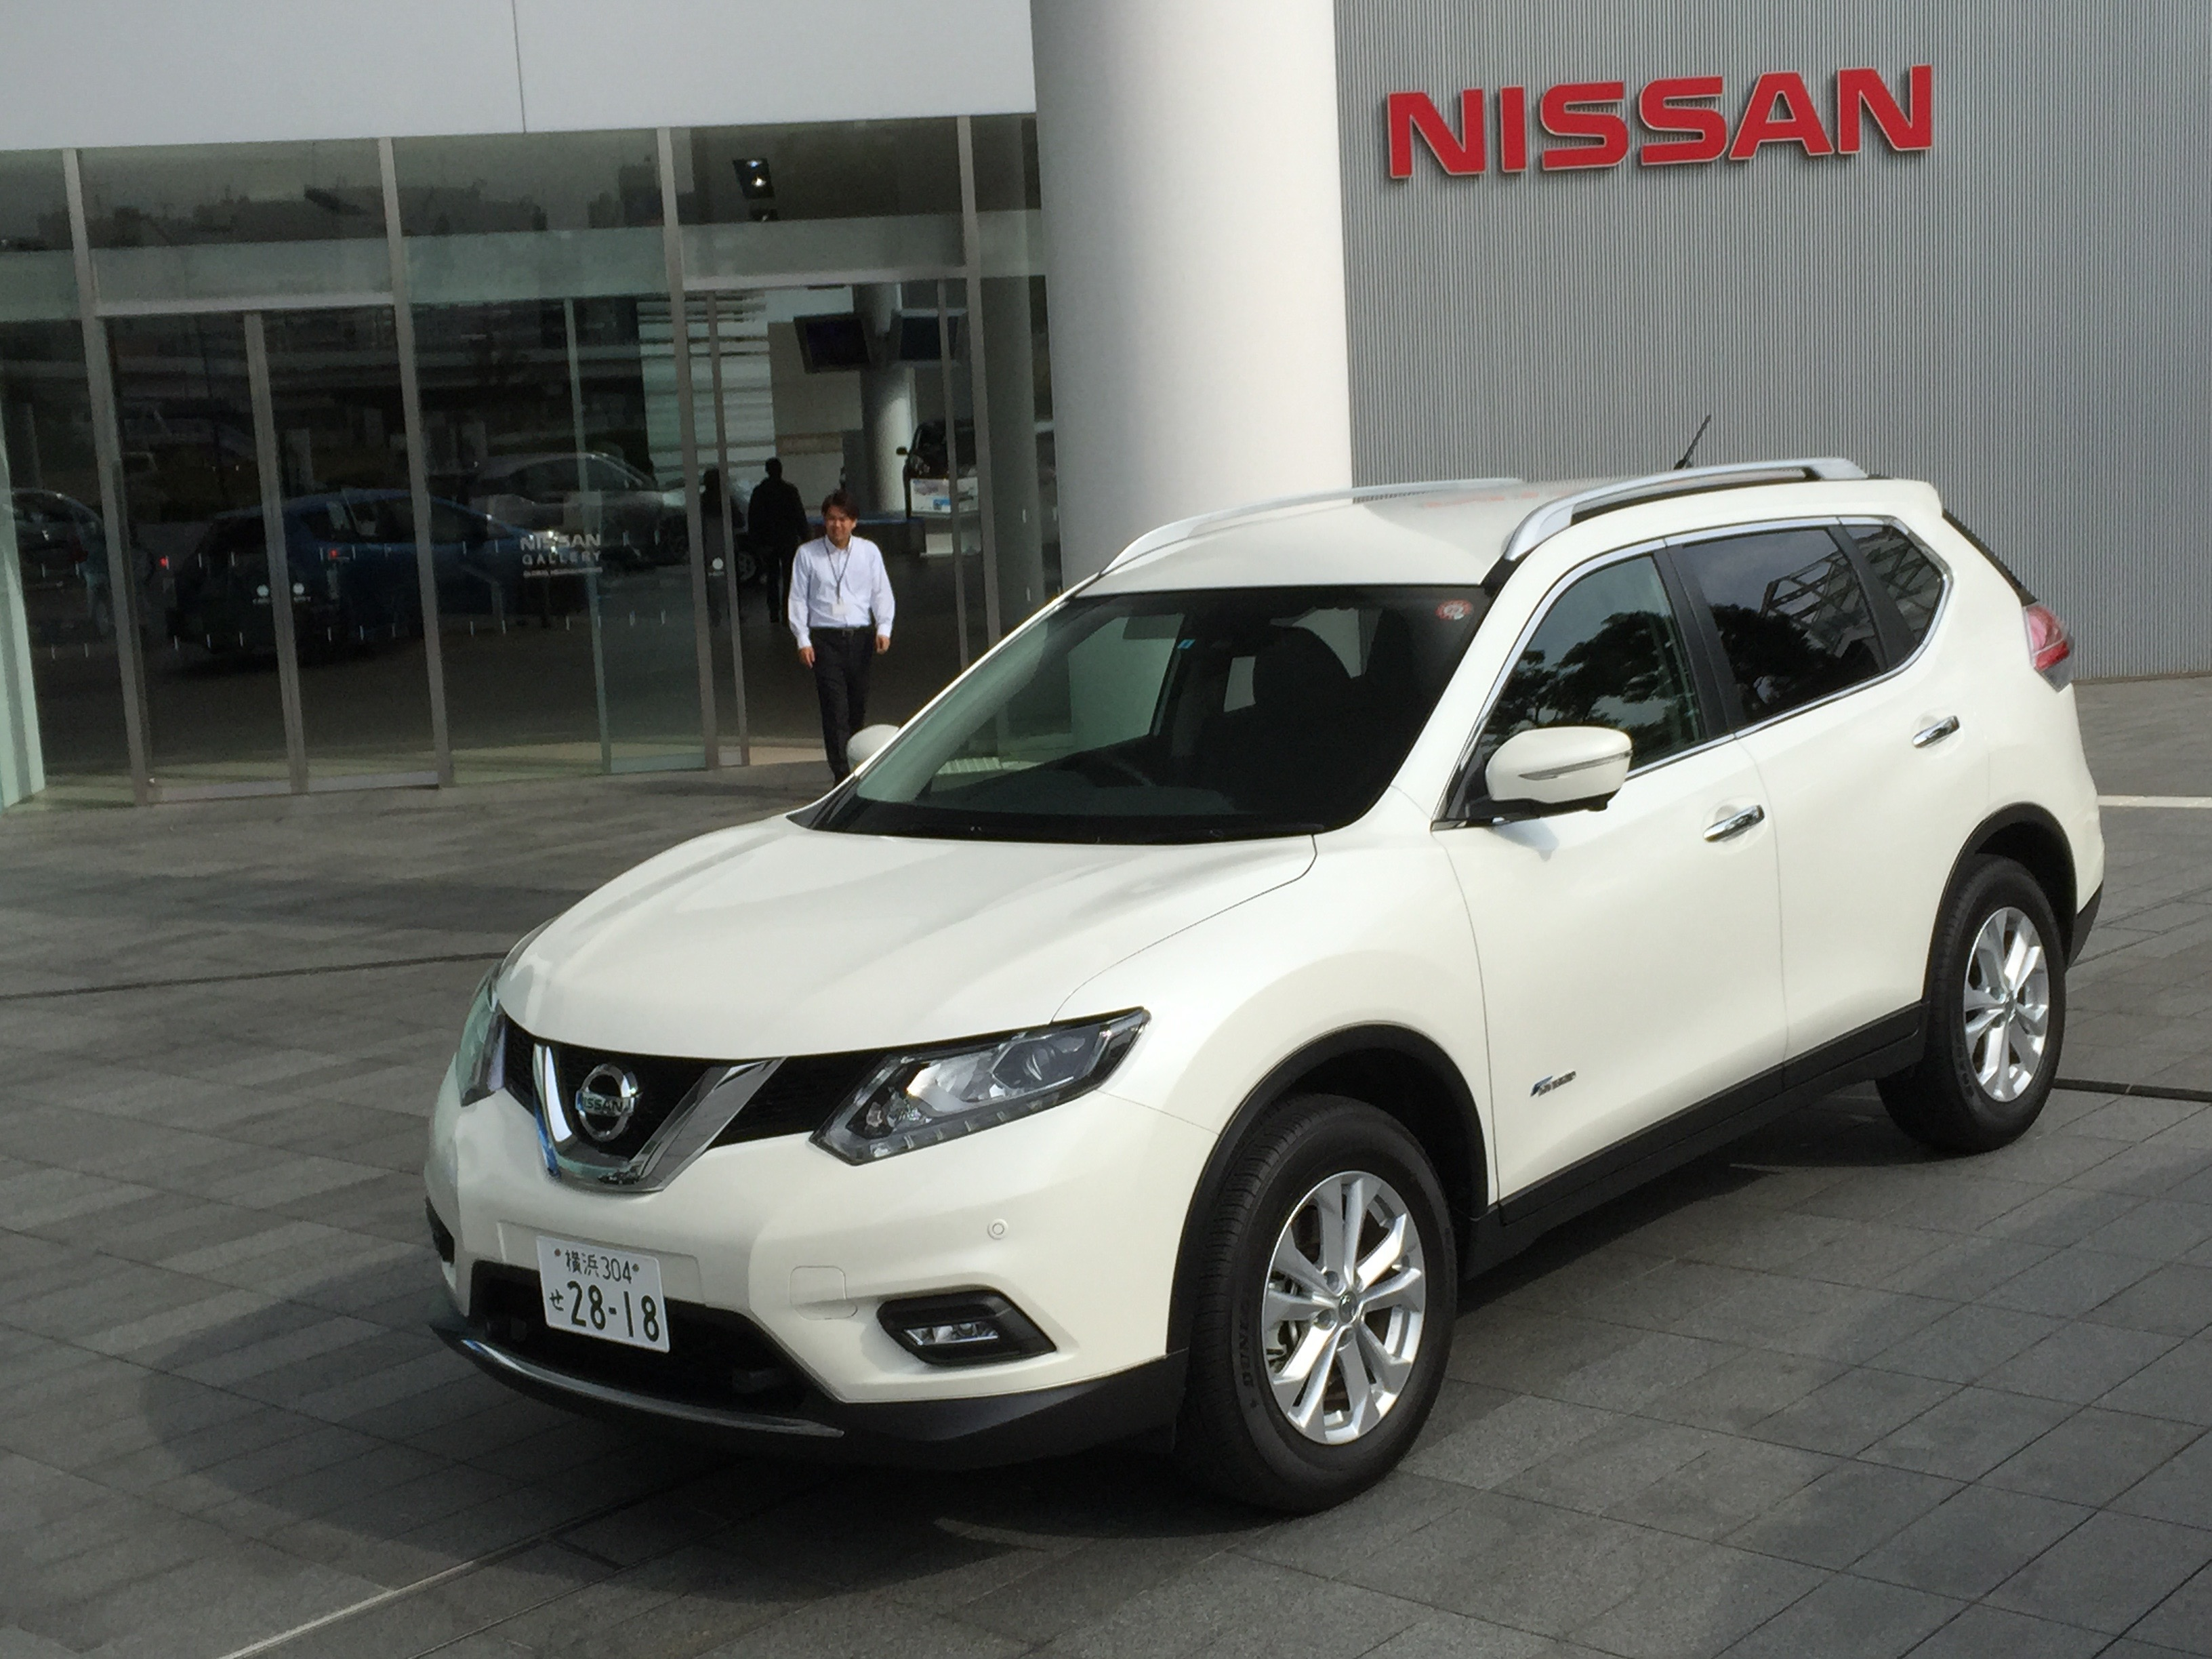 redesign suv innovative reformed design specs space release engine and a nissan murano rear received date interior